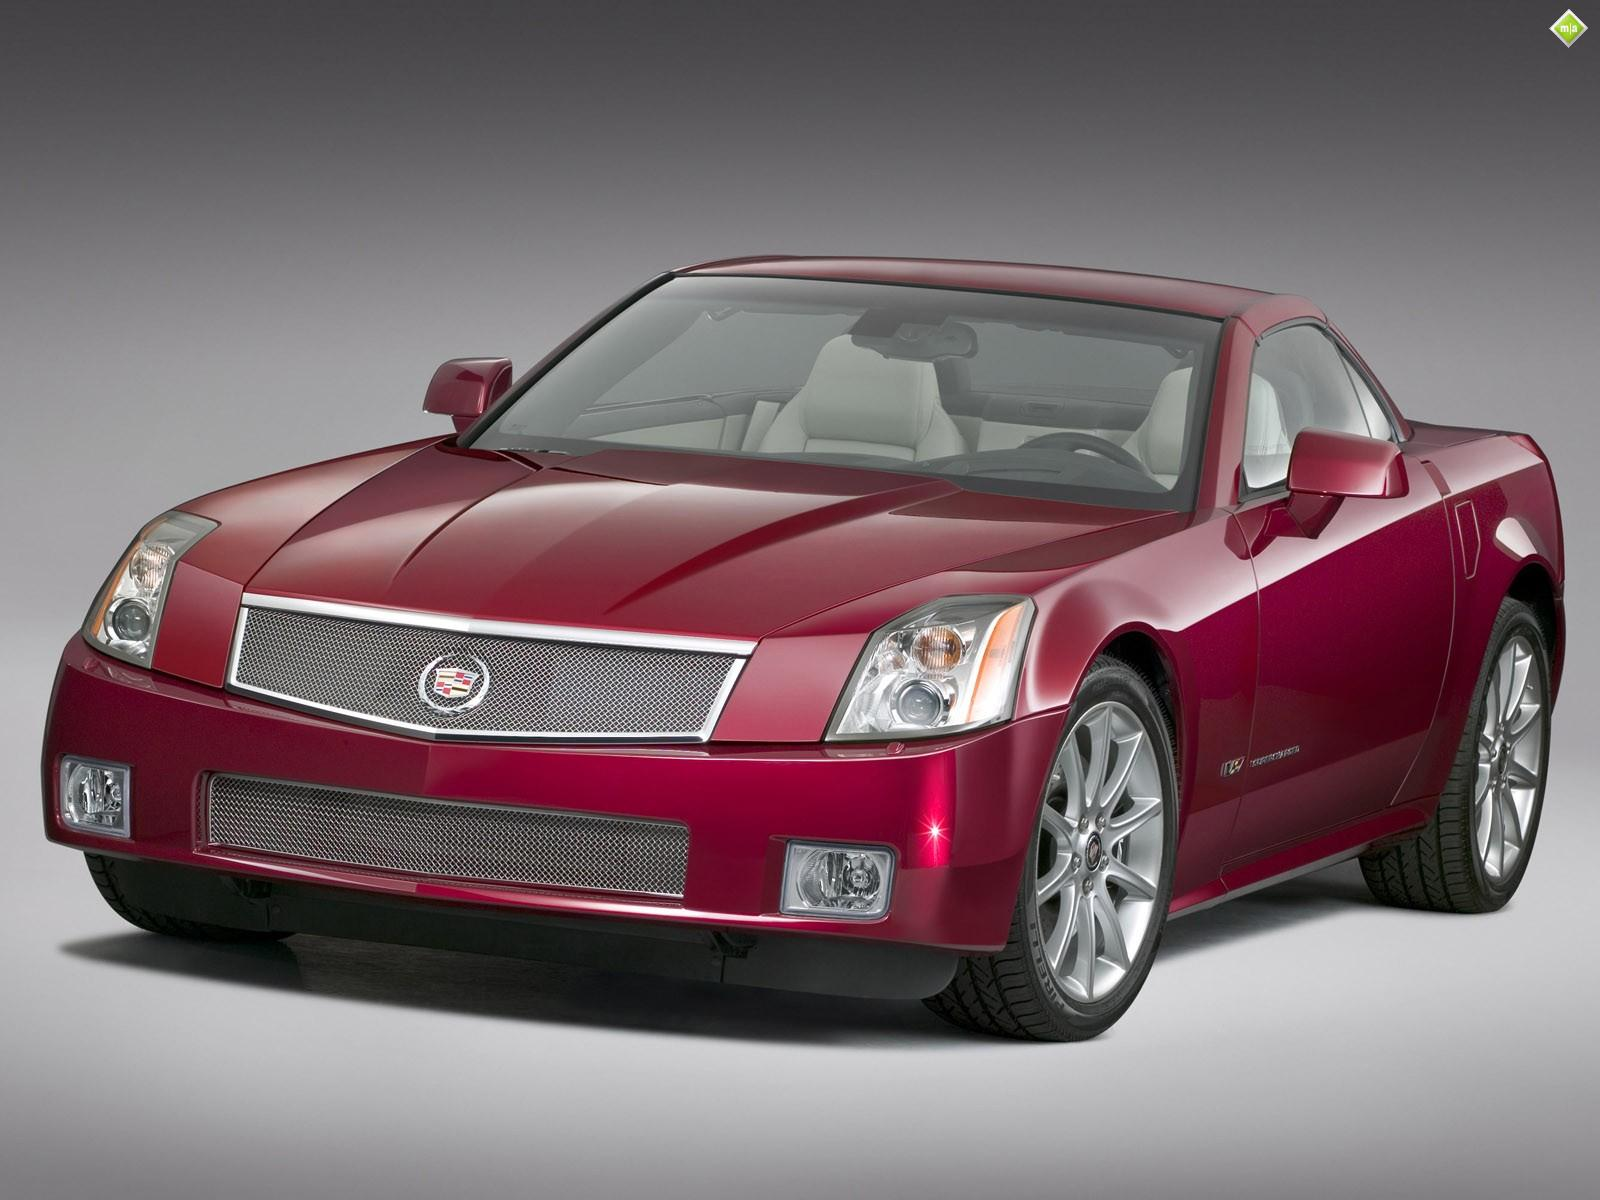 2011 cadillac xlr stills photos and wallpapers tech world. Black Bedroom Furniture Sets. Home Design Ideas